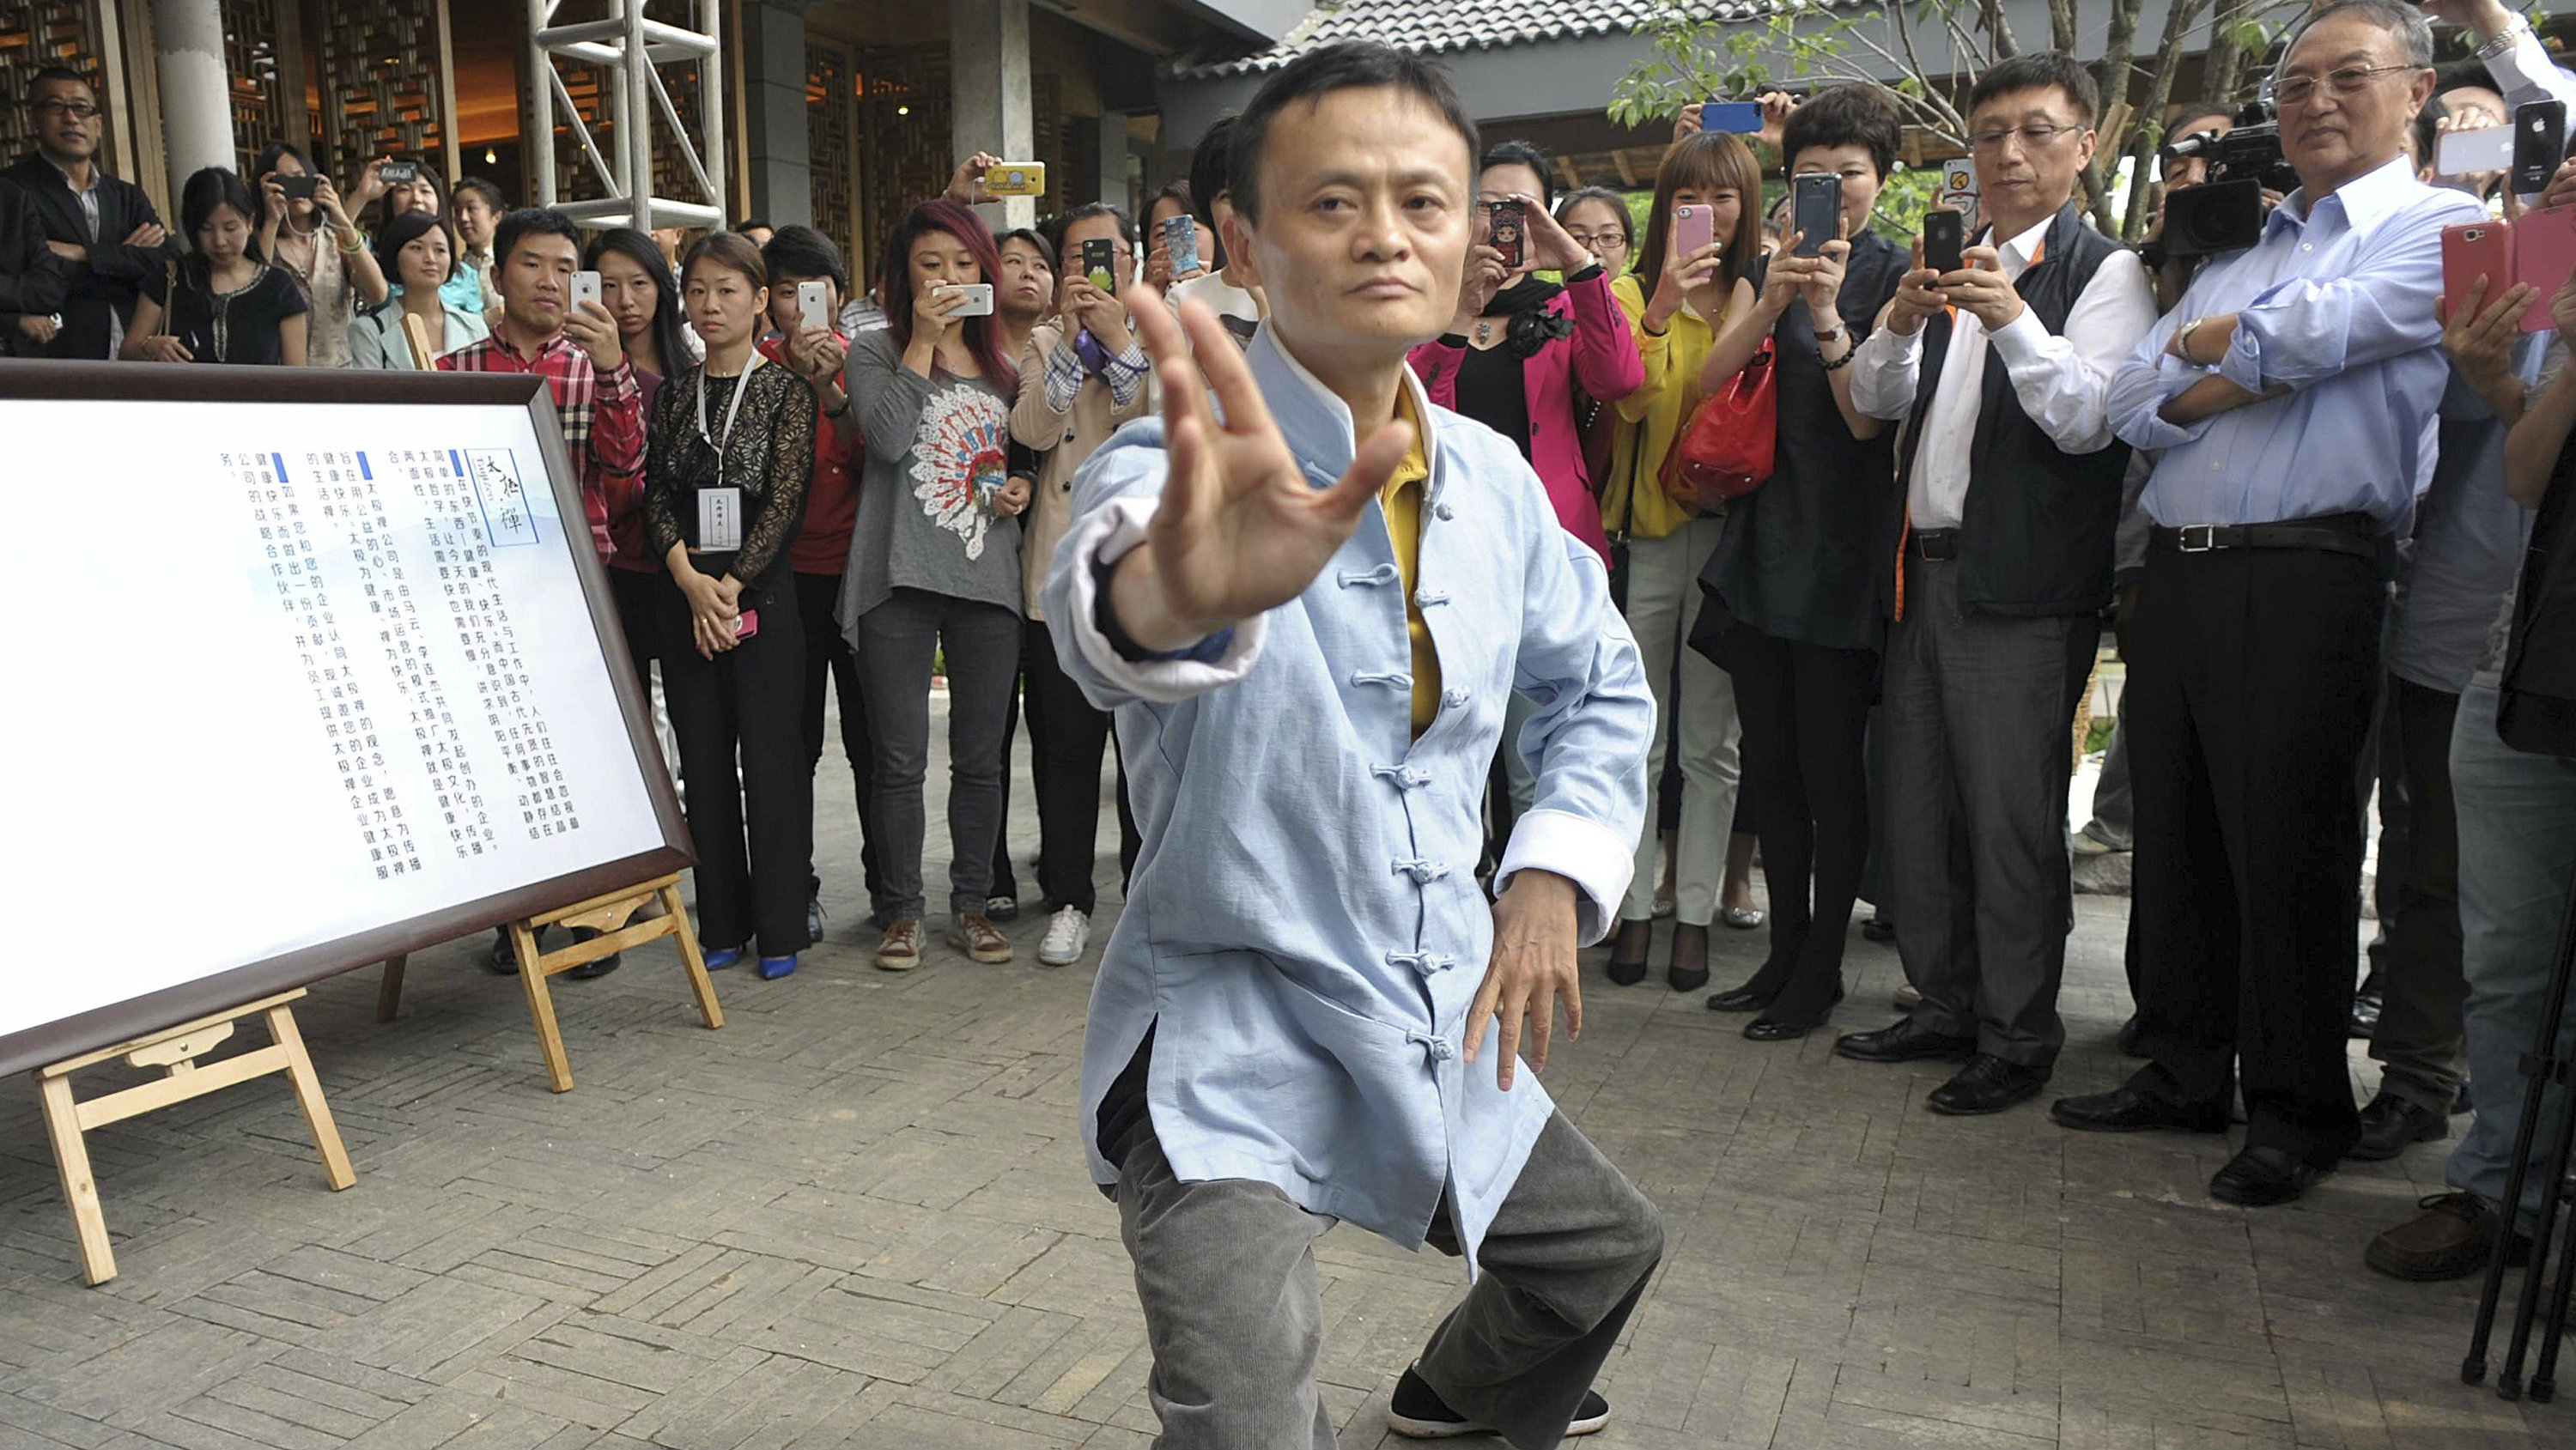 Jack Ma (C), chairman of China's largest e-commerce firm Alibaba Group, performs Tai Chi as guests and visitors take pictures and videos, at a opening ceremony of a Tai Chi school in Hangzhou, Zhejiang province May 10, 2013. Jack Ma stepped down as chief executive of Alibaba Group on Friday. The Tai Chi school was co-founded by Ma and Chinese action movie star Jet Li, local media reported.